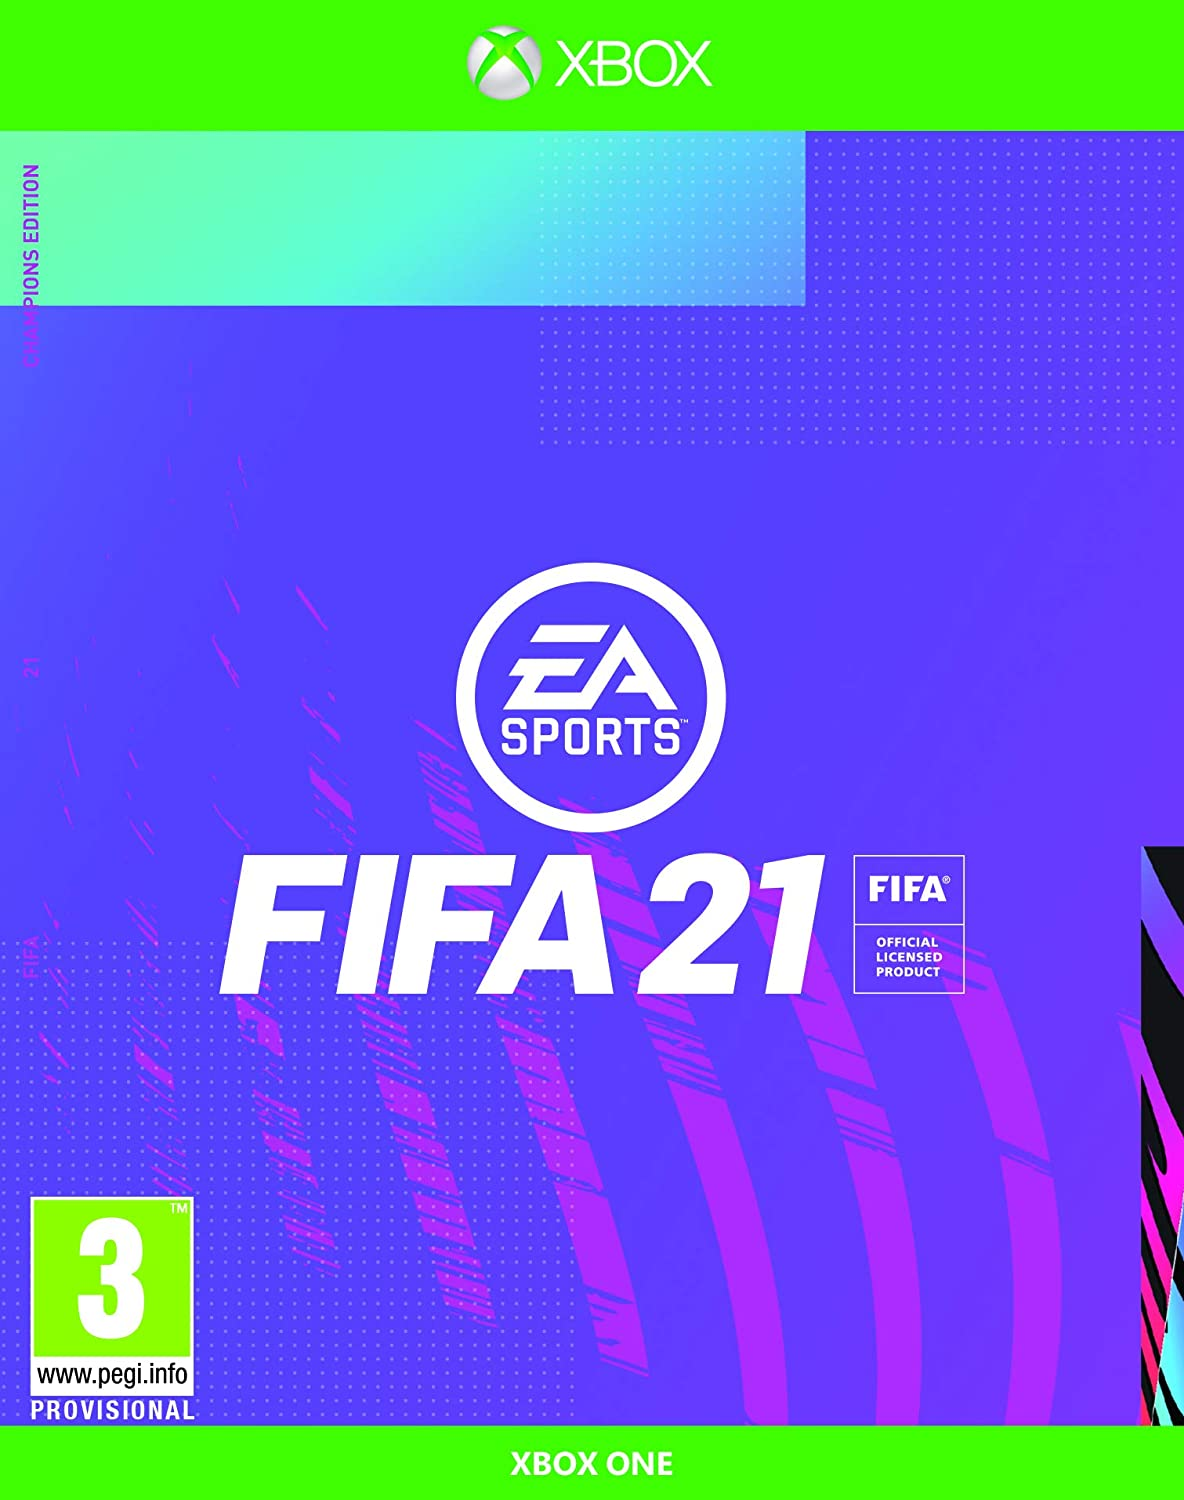 FIFA 21 Champions Edition - Xbox One: Amazon.es: Videojuegos